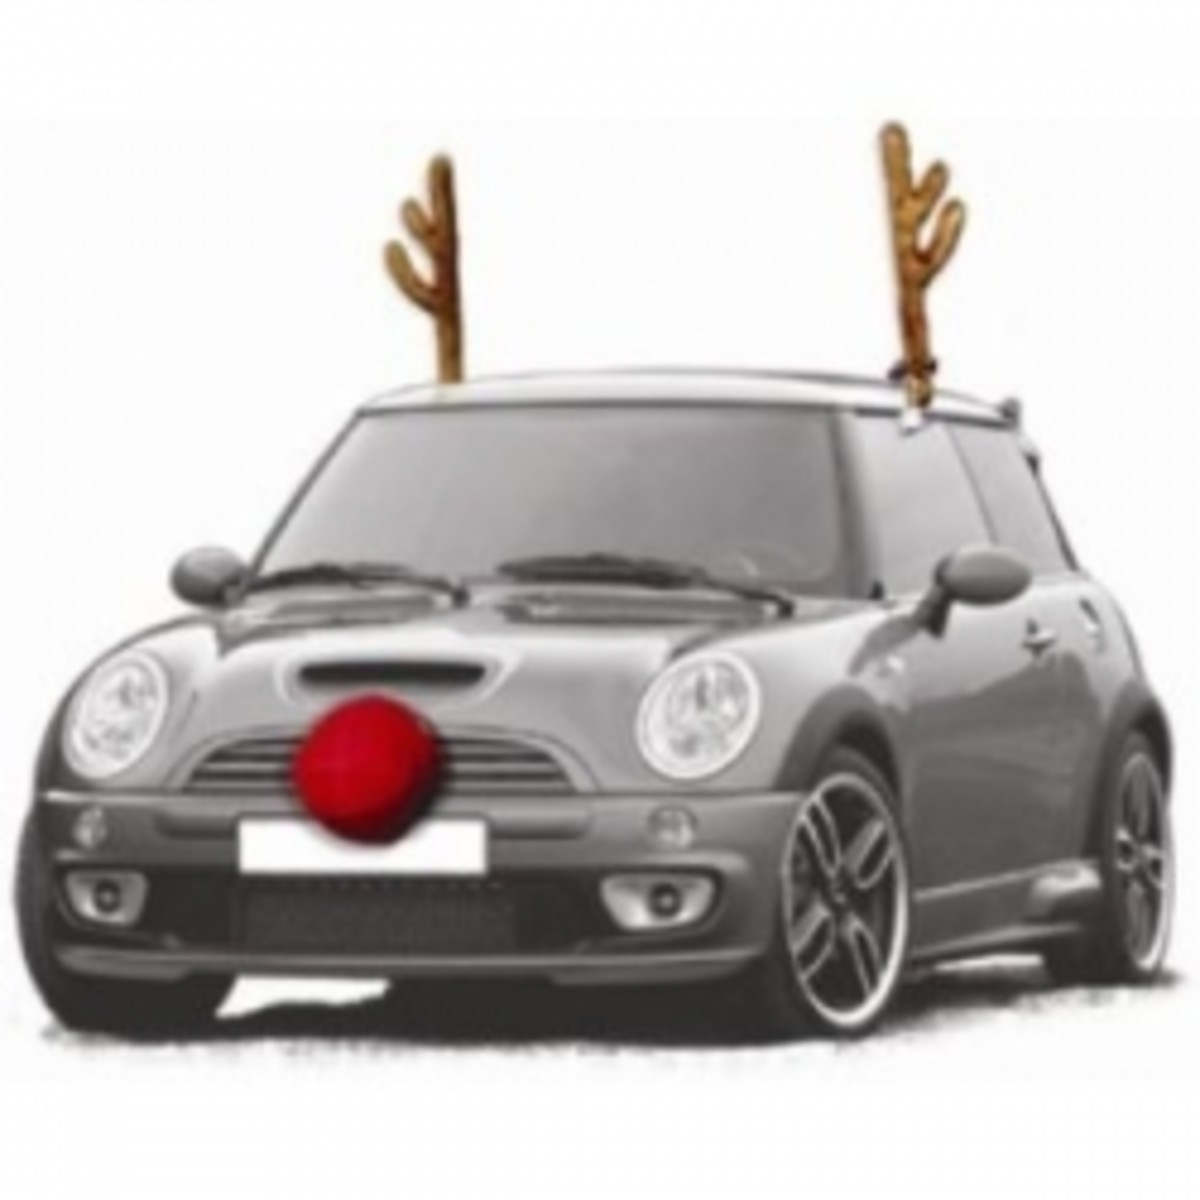 car reindeer antlers and nose and other christmas car decorations. Black Bedroom Furniture Sets. Home Design Ideas